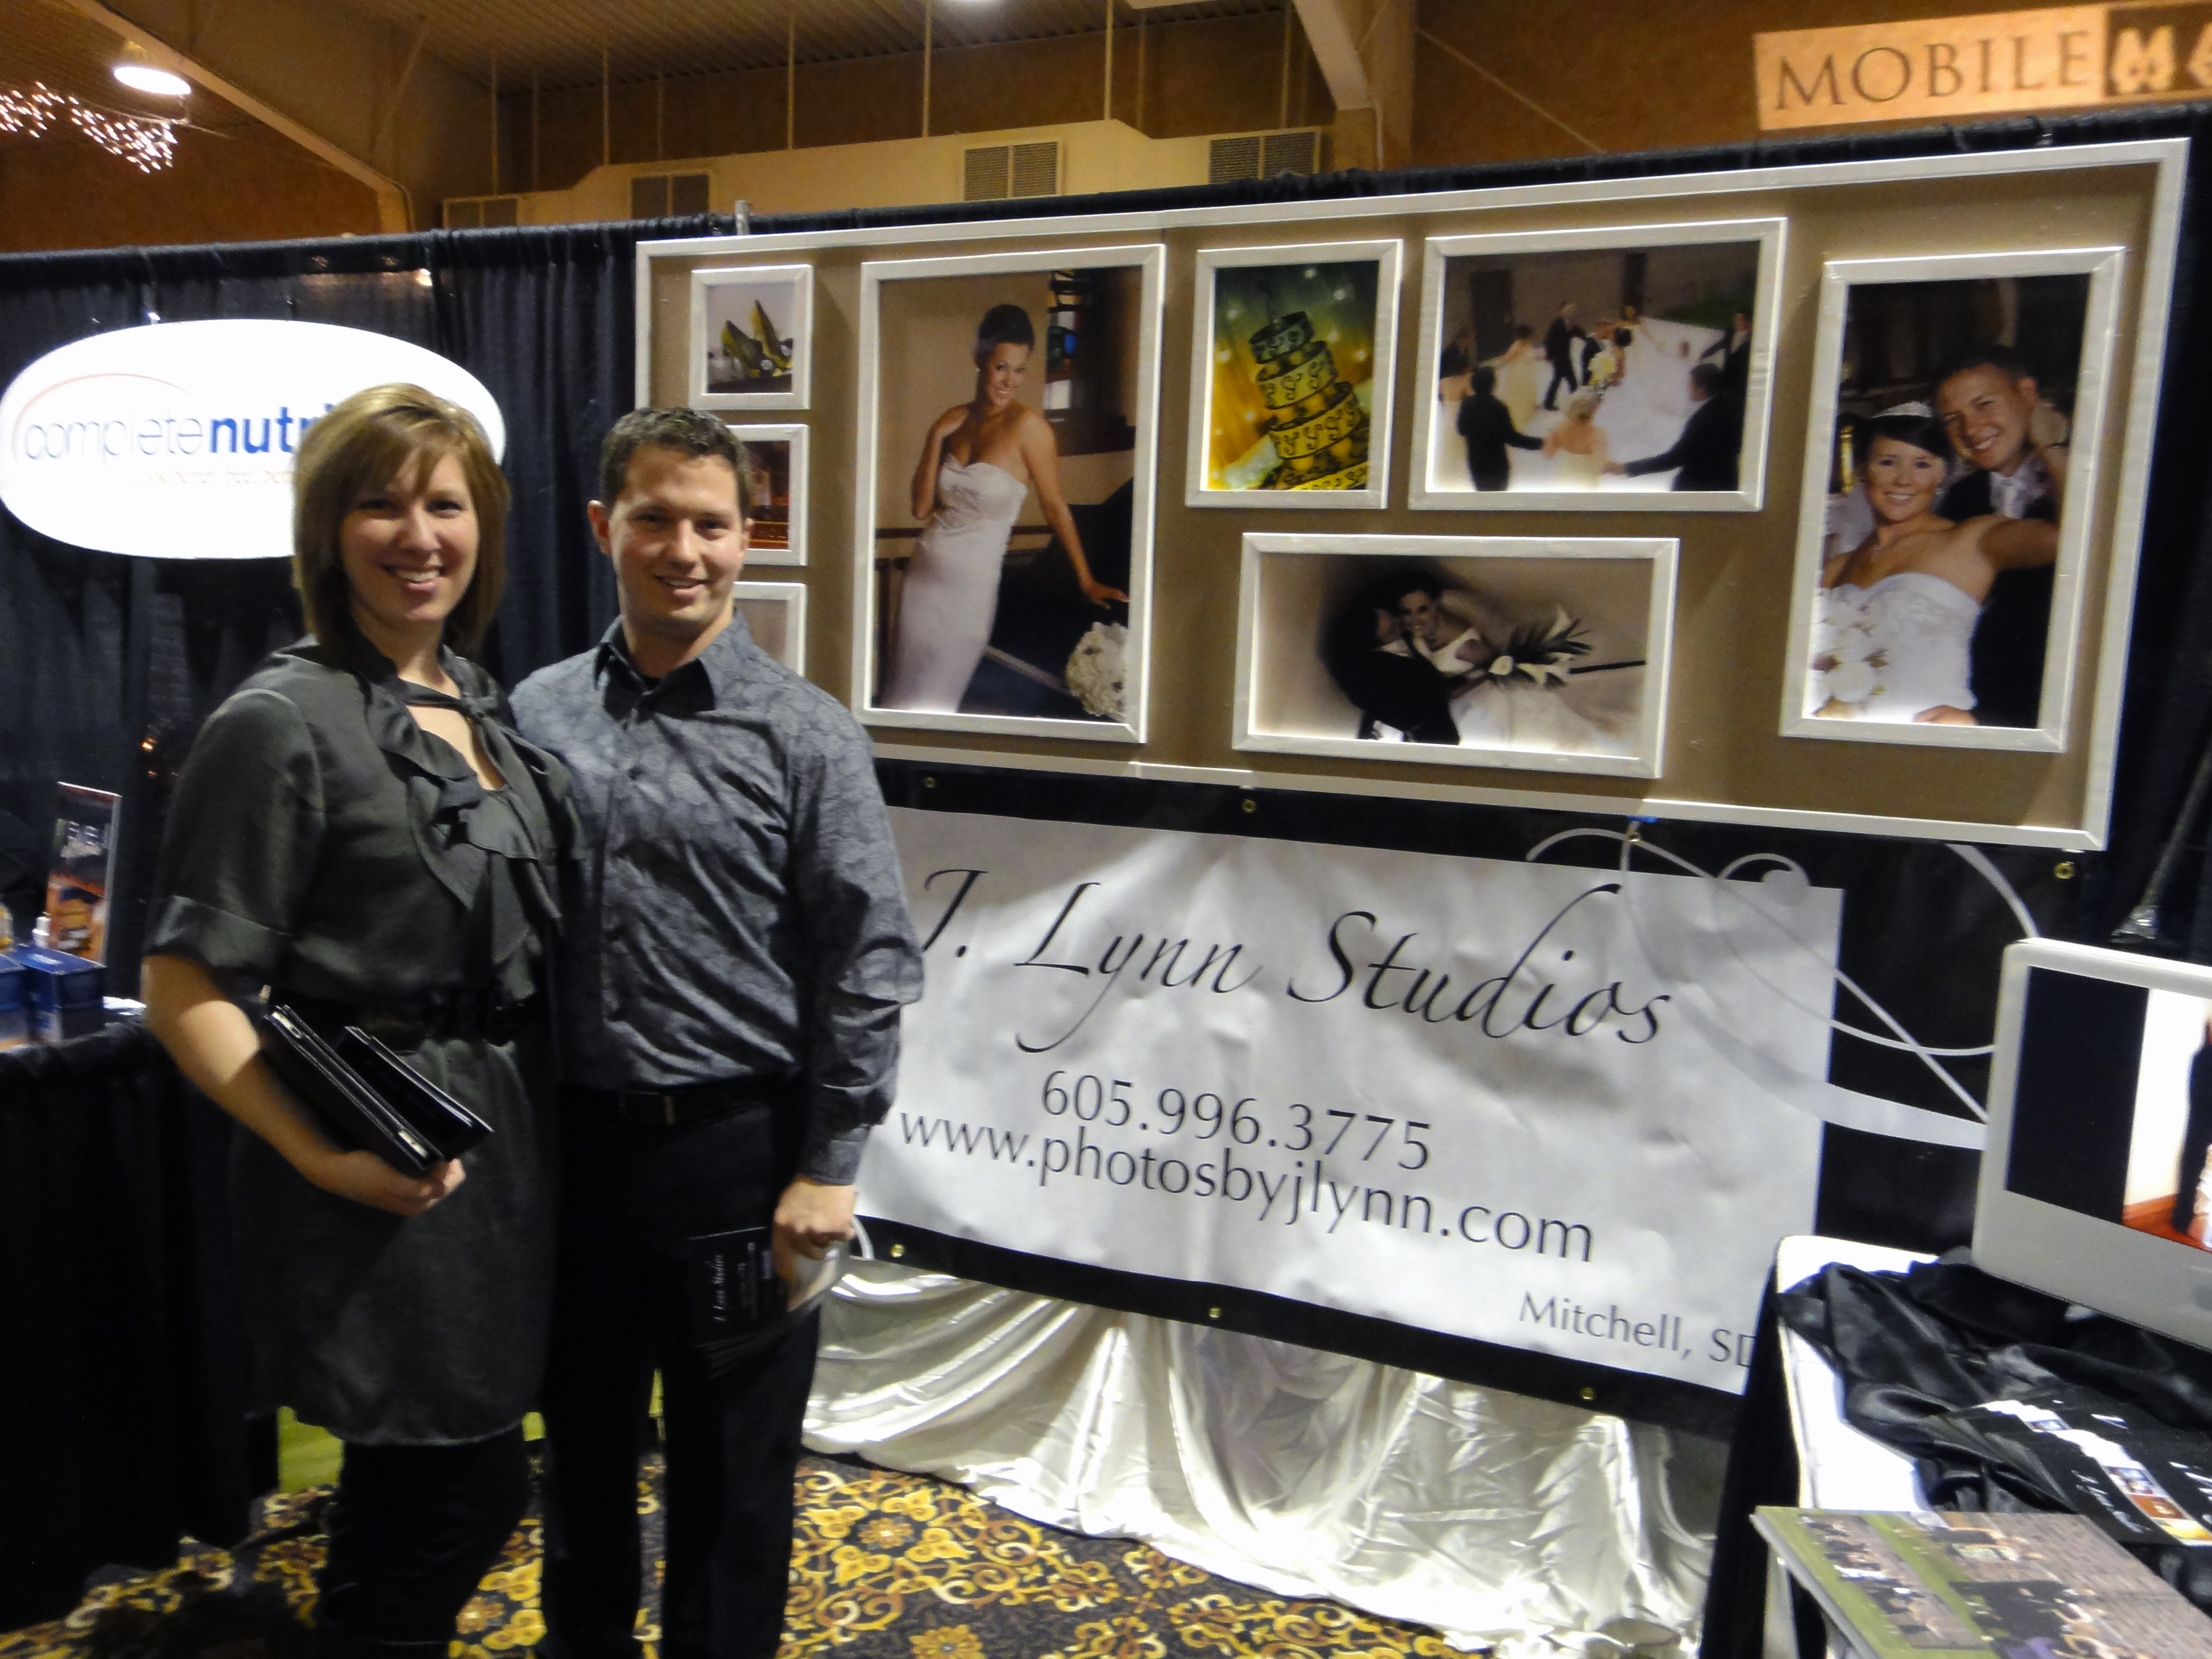 siouxempireweddingnetw...